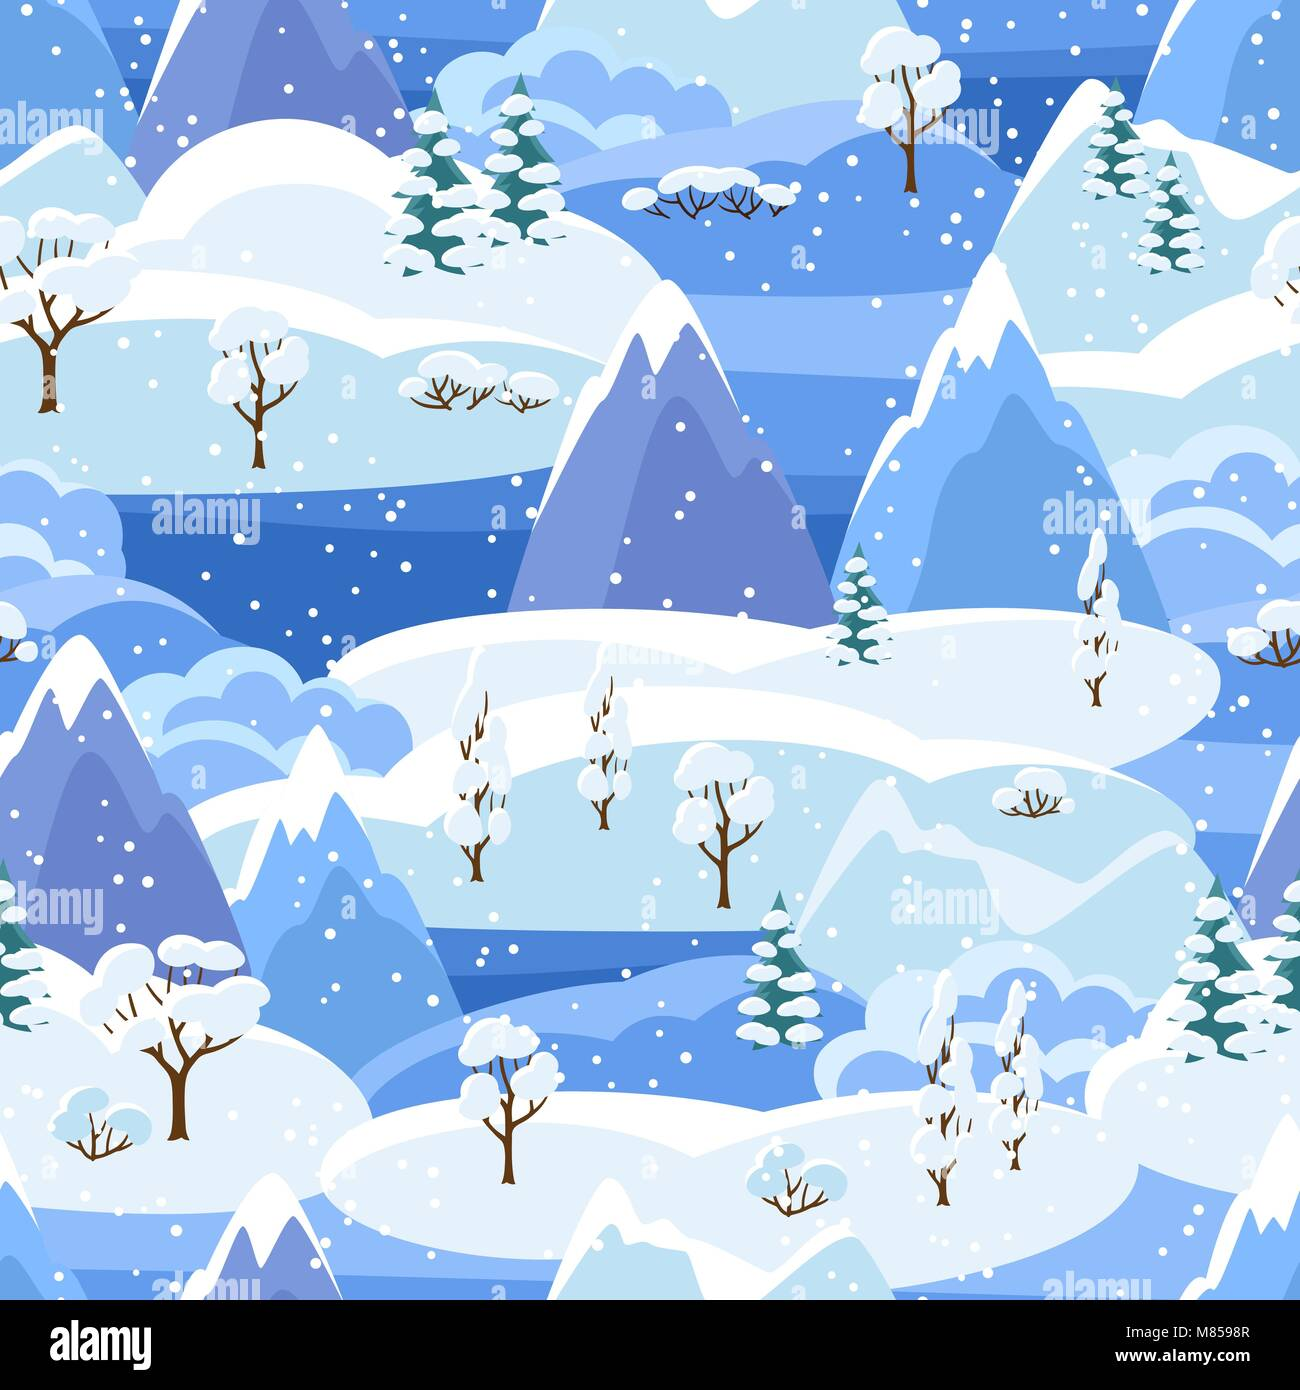 Winter seamless pattern with trees, mountains and hills. Seasonal landscape illustration - Stock Vector